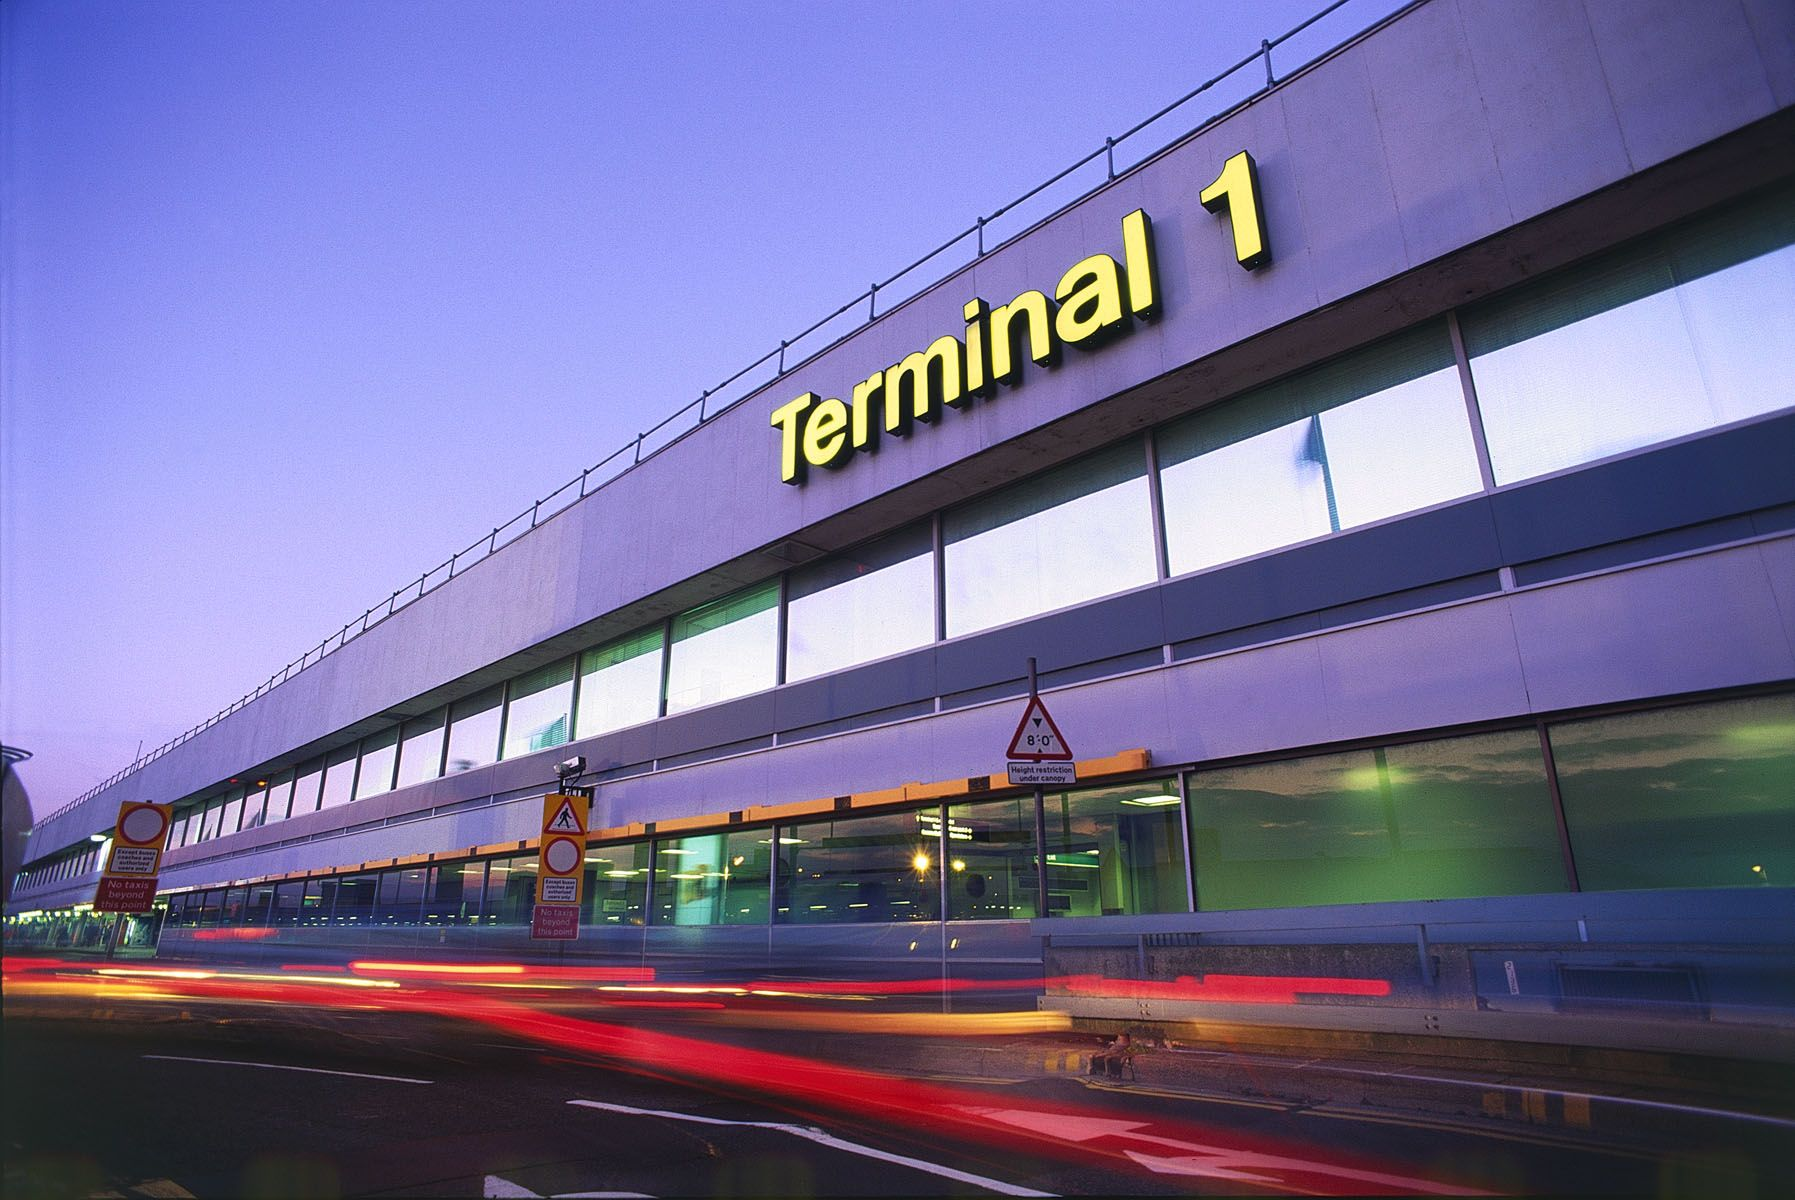 UK's only hub airport delivered outstanding customer service in 2017 and was named 'Best Airport in Western Europe' for the third year running